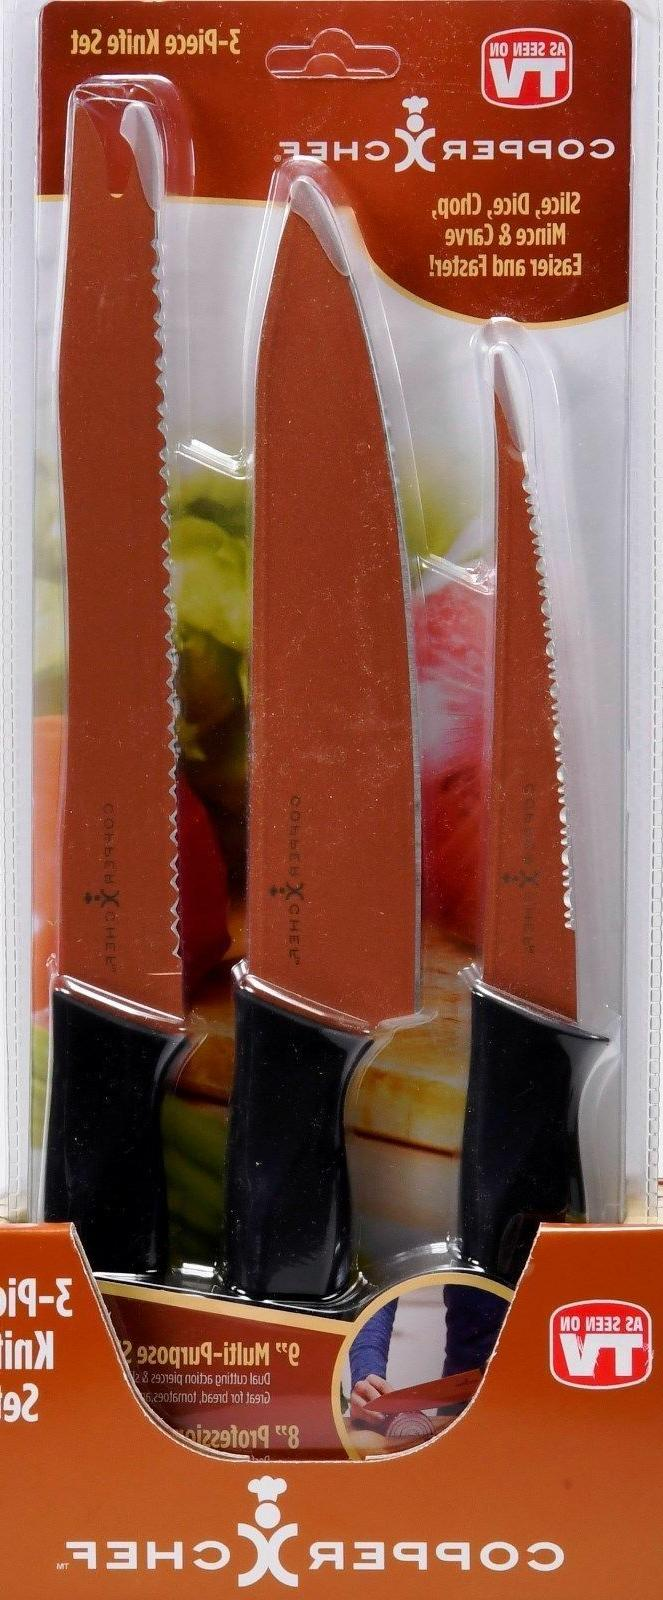 "COPPER CHEF 3-PIECE KNIFE SET WITH A 9"" MULTI-PURPOSE SLICER"